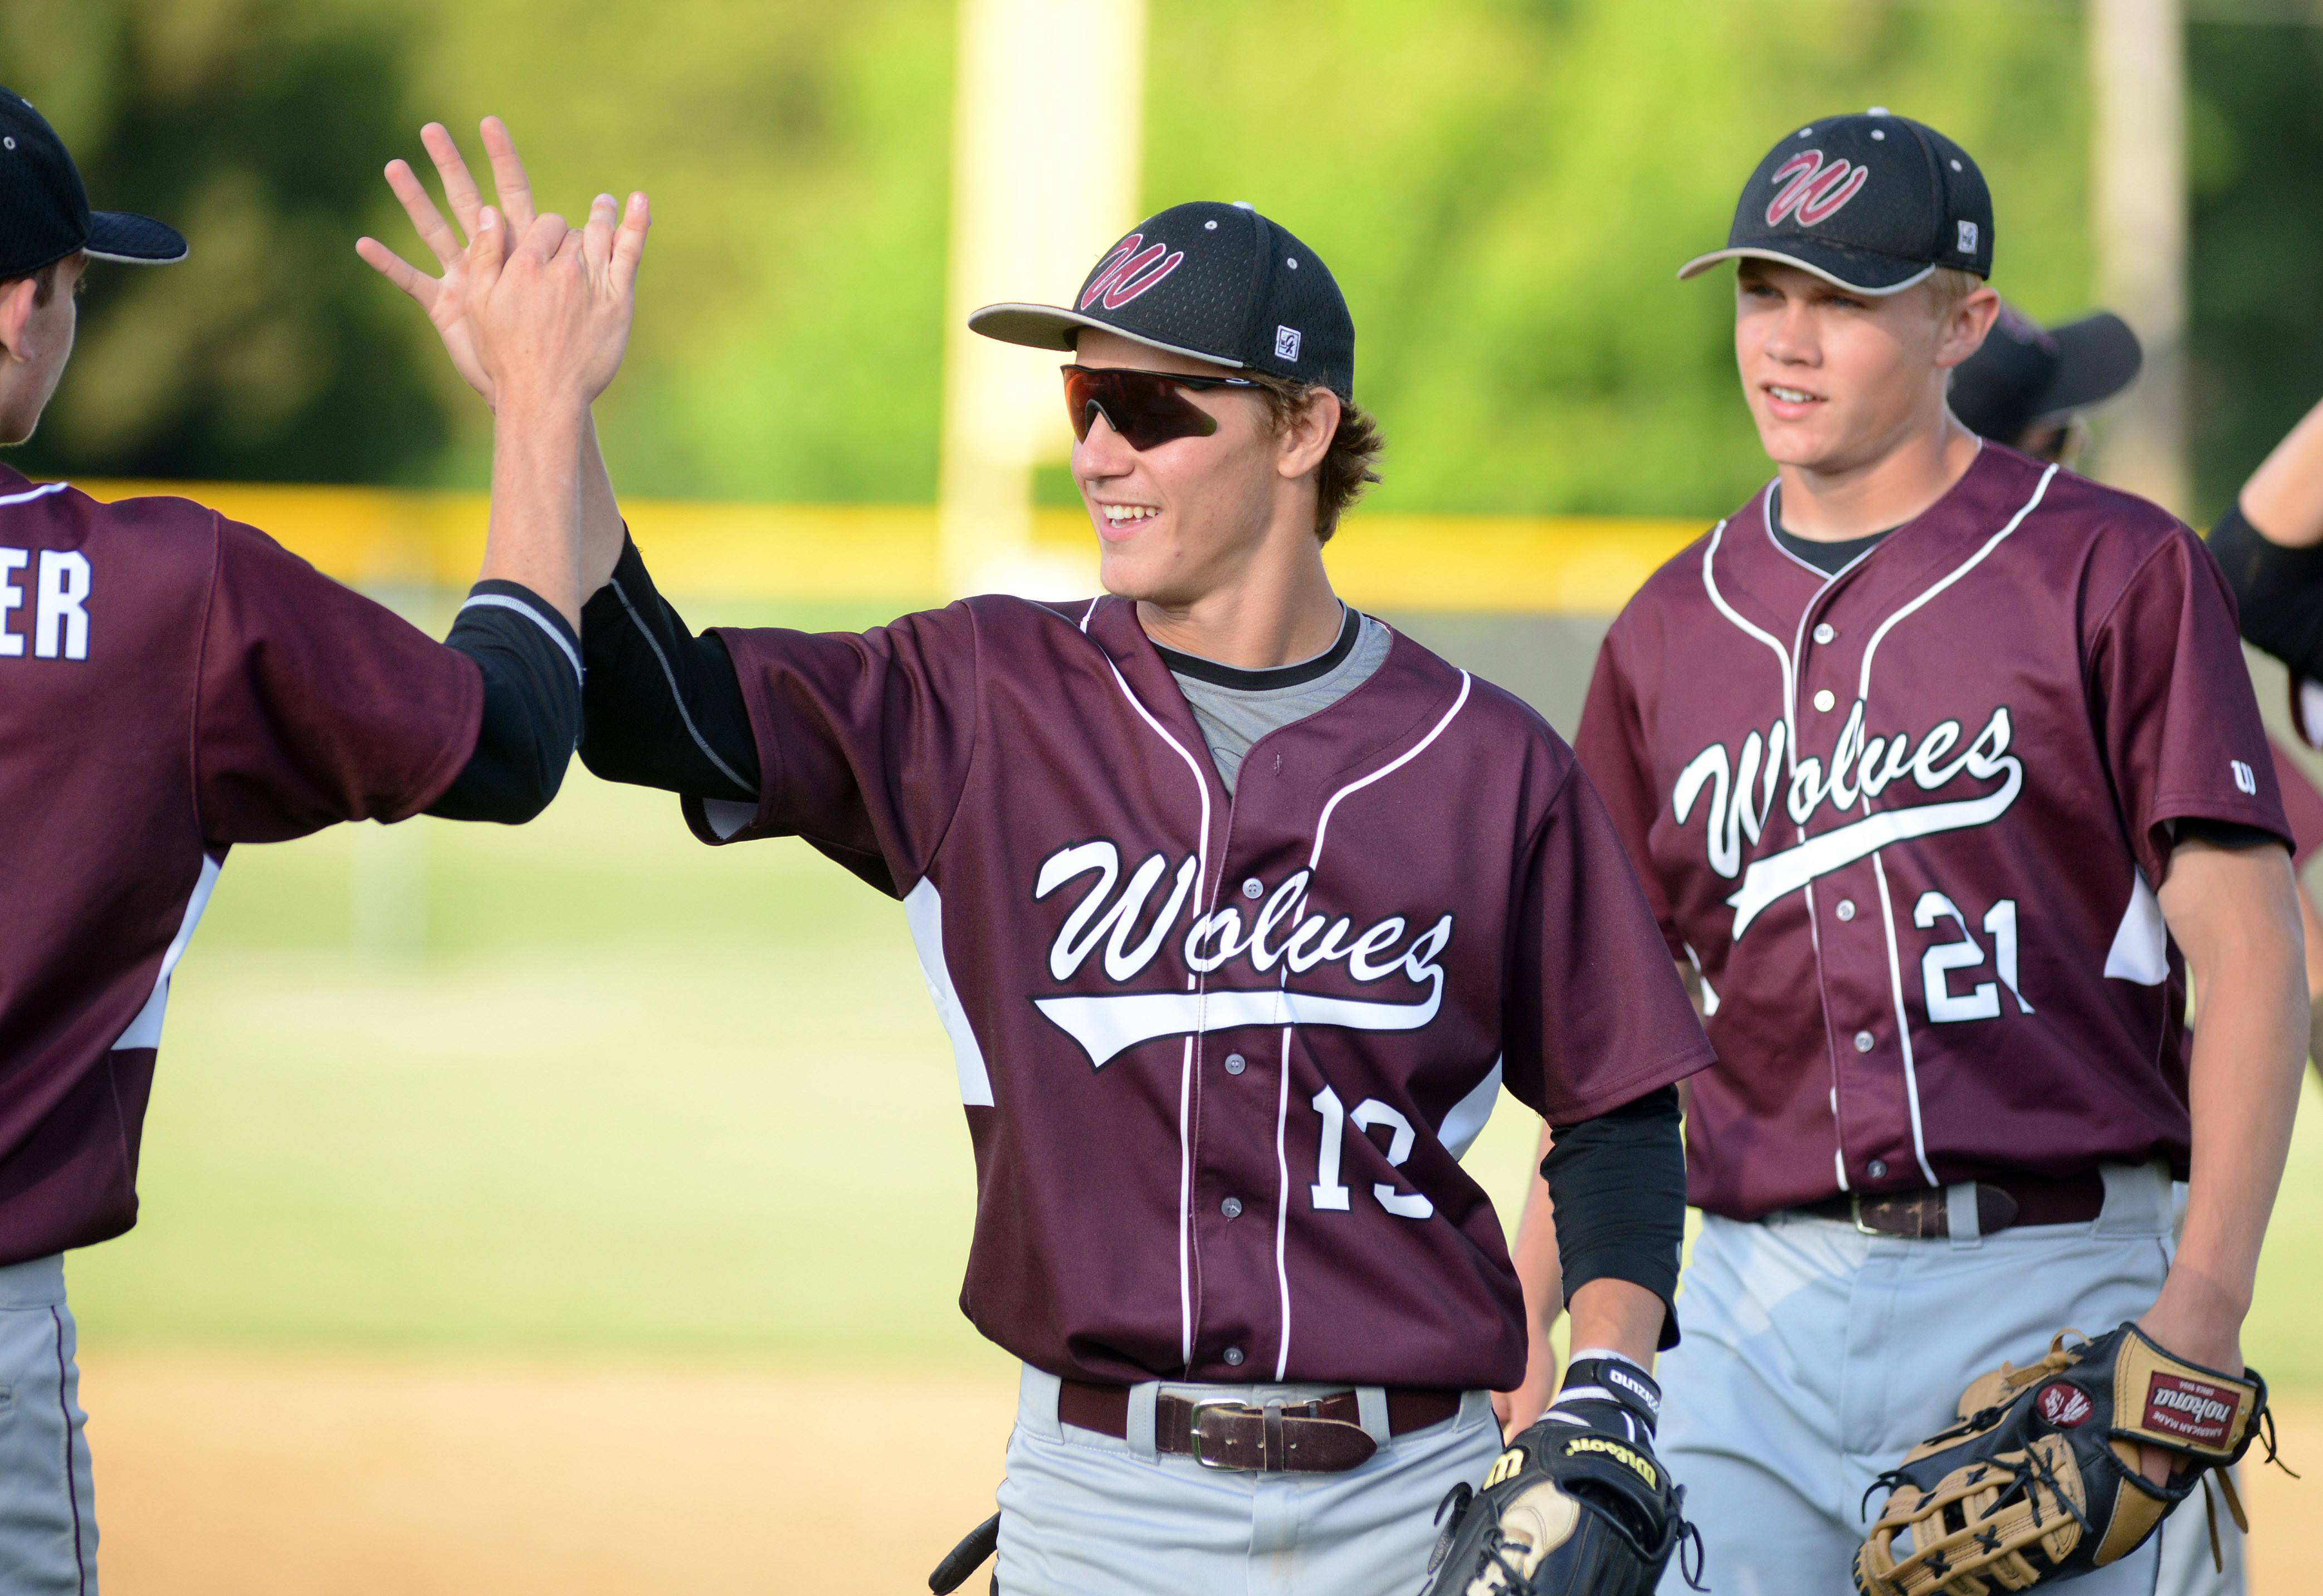 Prairie Ridge's Connor Schneider, left, high fives Kyle Buresch (facing) as they come off the field winning the game vs. Huntley in the Class 4A McHenry sectional semifinal on Wednesday, June 4.